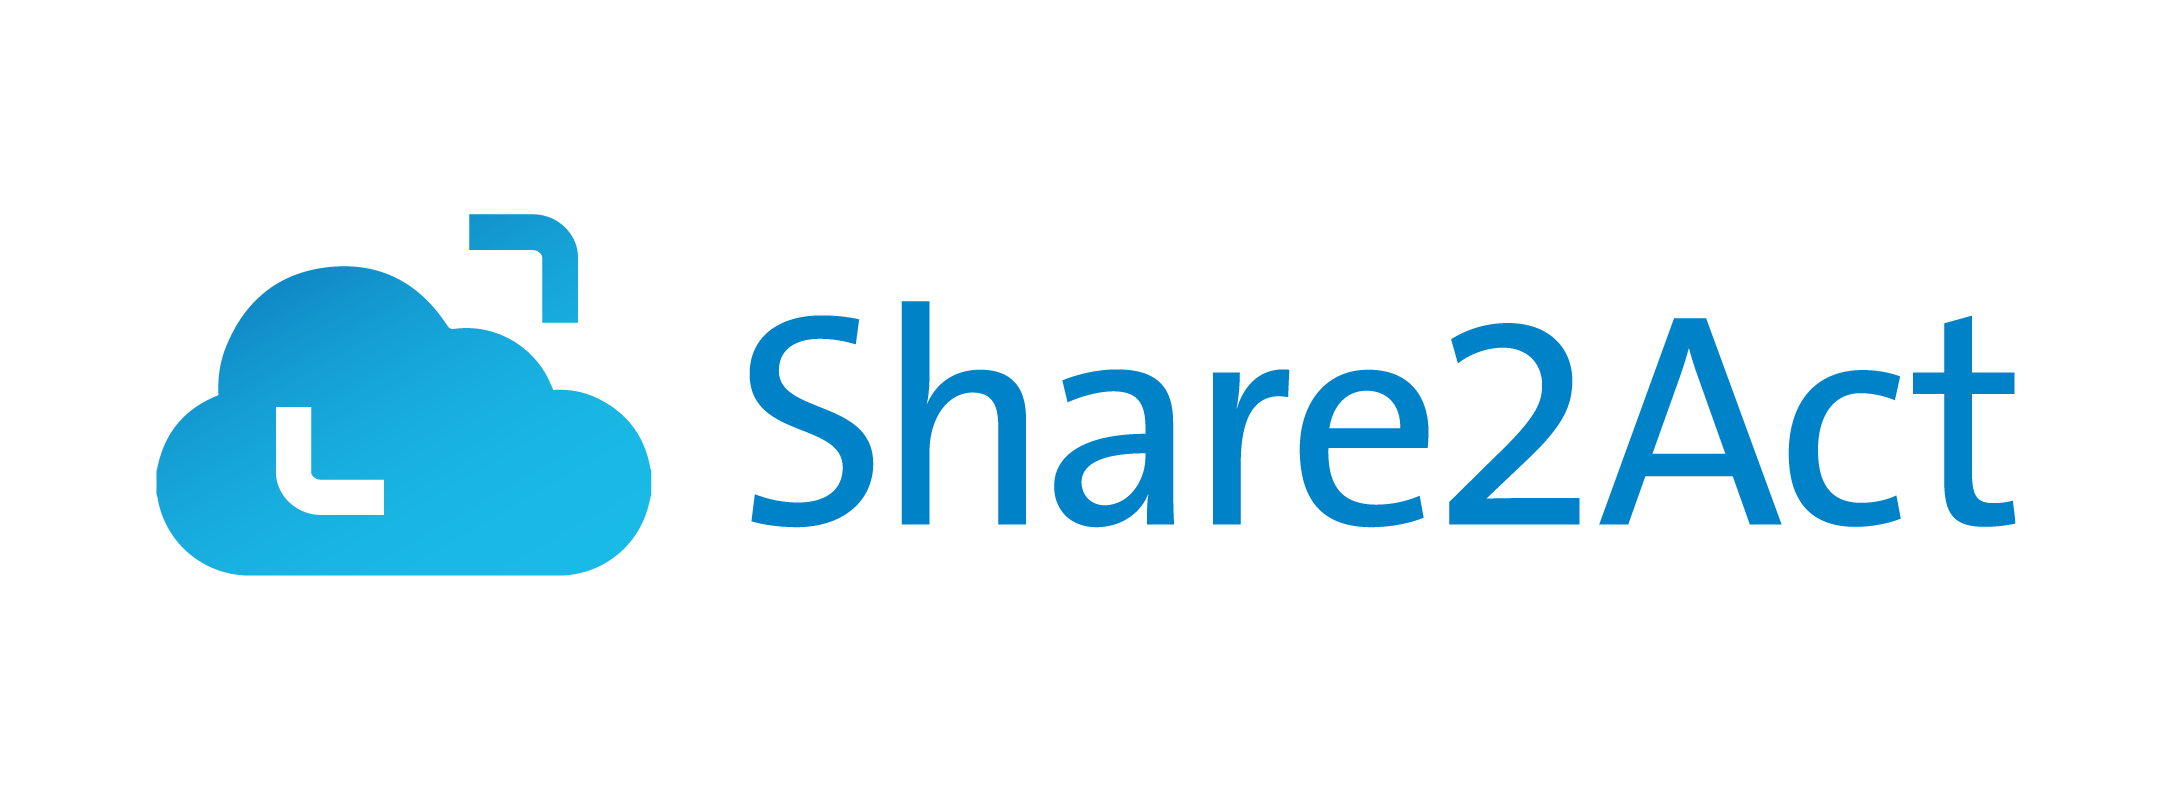 Share2Act